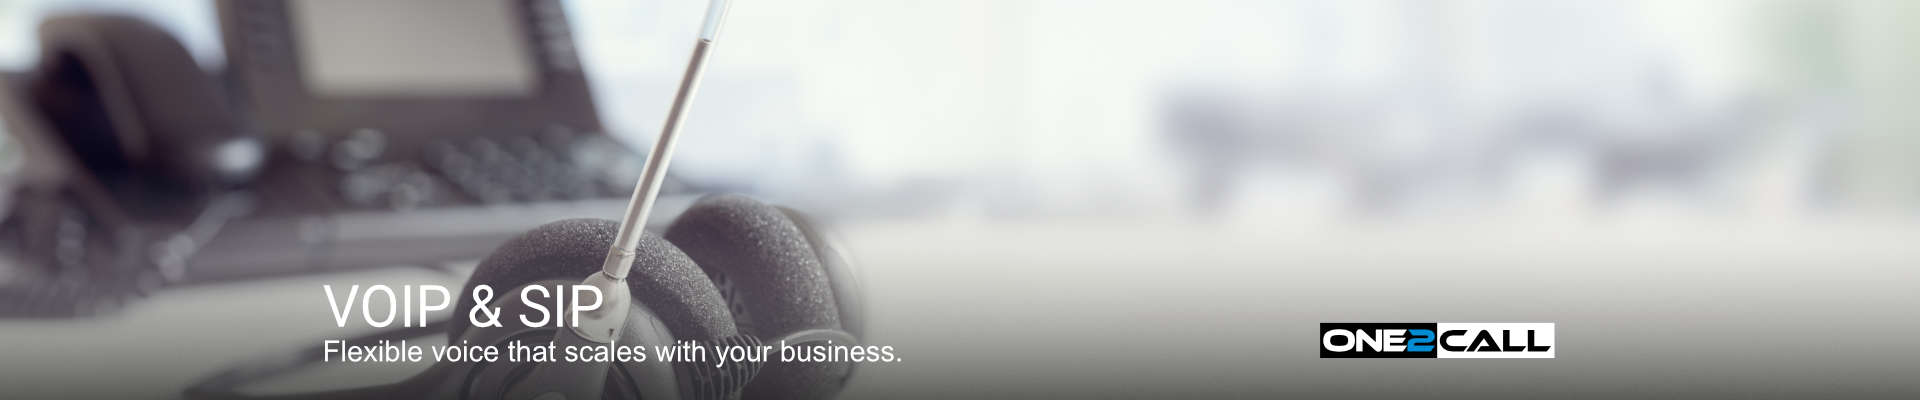 VOIP & SIP - Flexible voice that scales with your business.